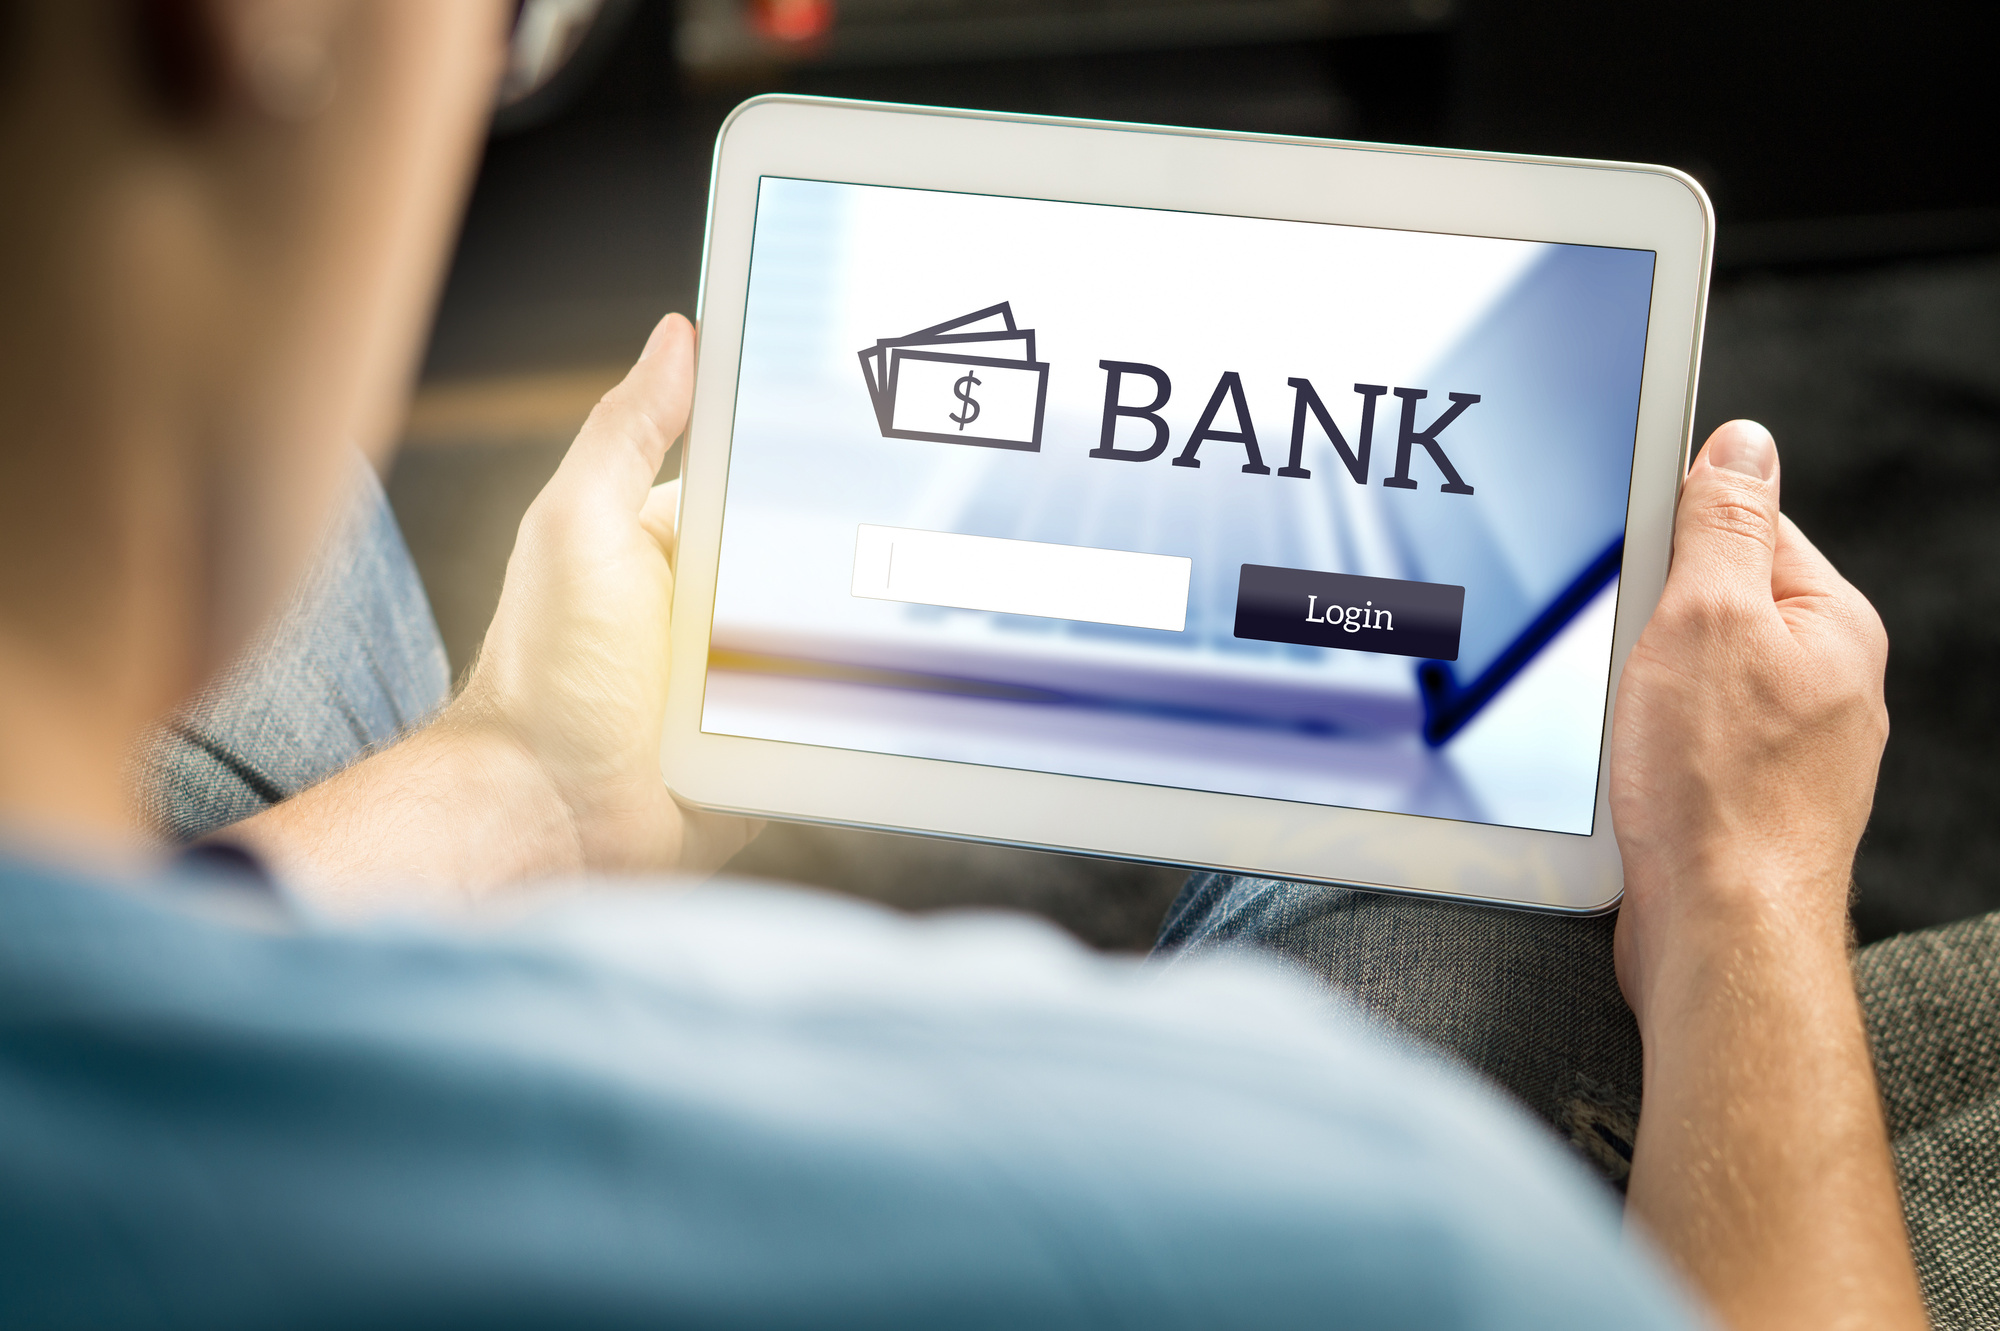 Are Mobile Banking Apps Good? How to Tell If They Are Worth It